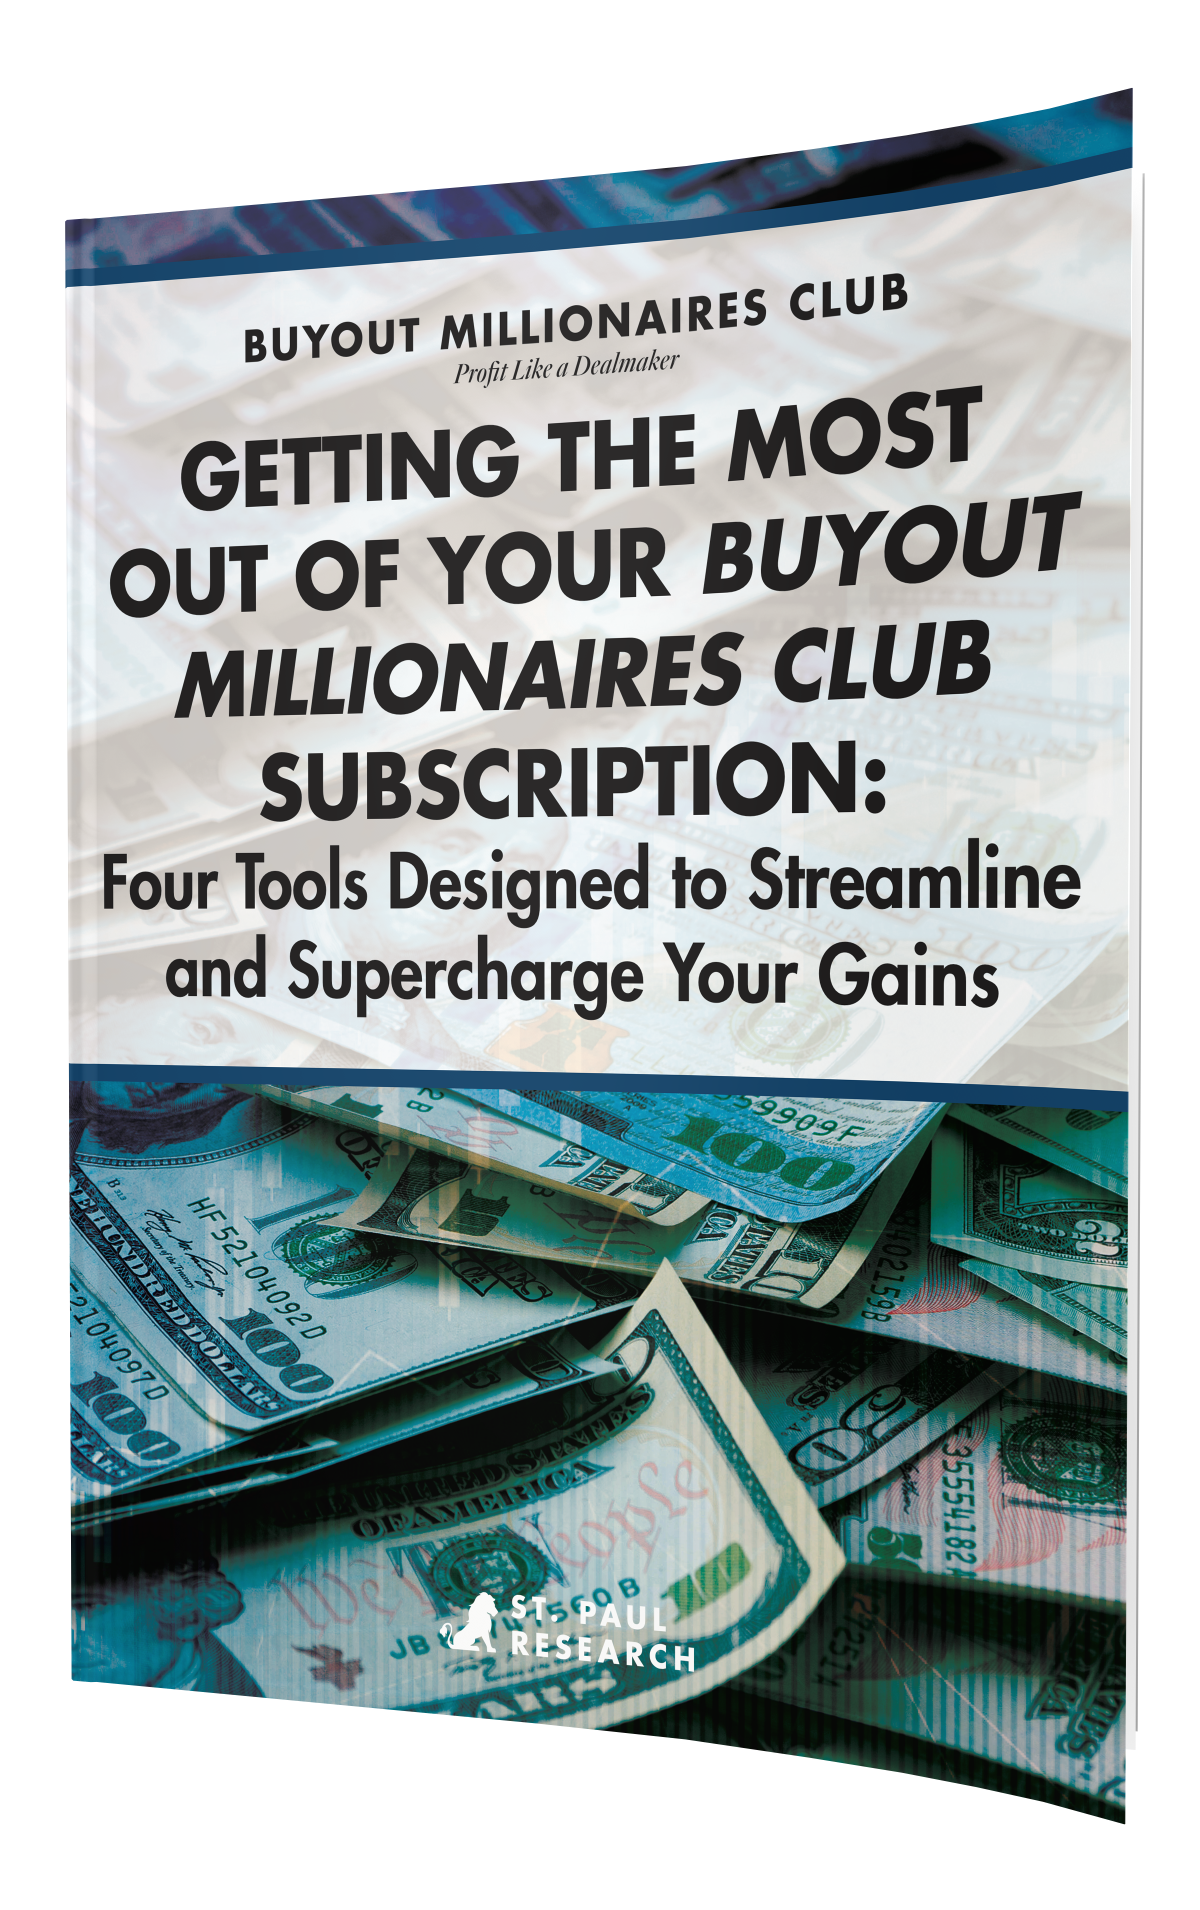 Getting the Most out of Your Buyout Millionaires Club Subscription: 4 Tools Designed to Streamline and Supercharge Your Gains